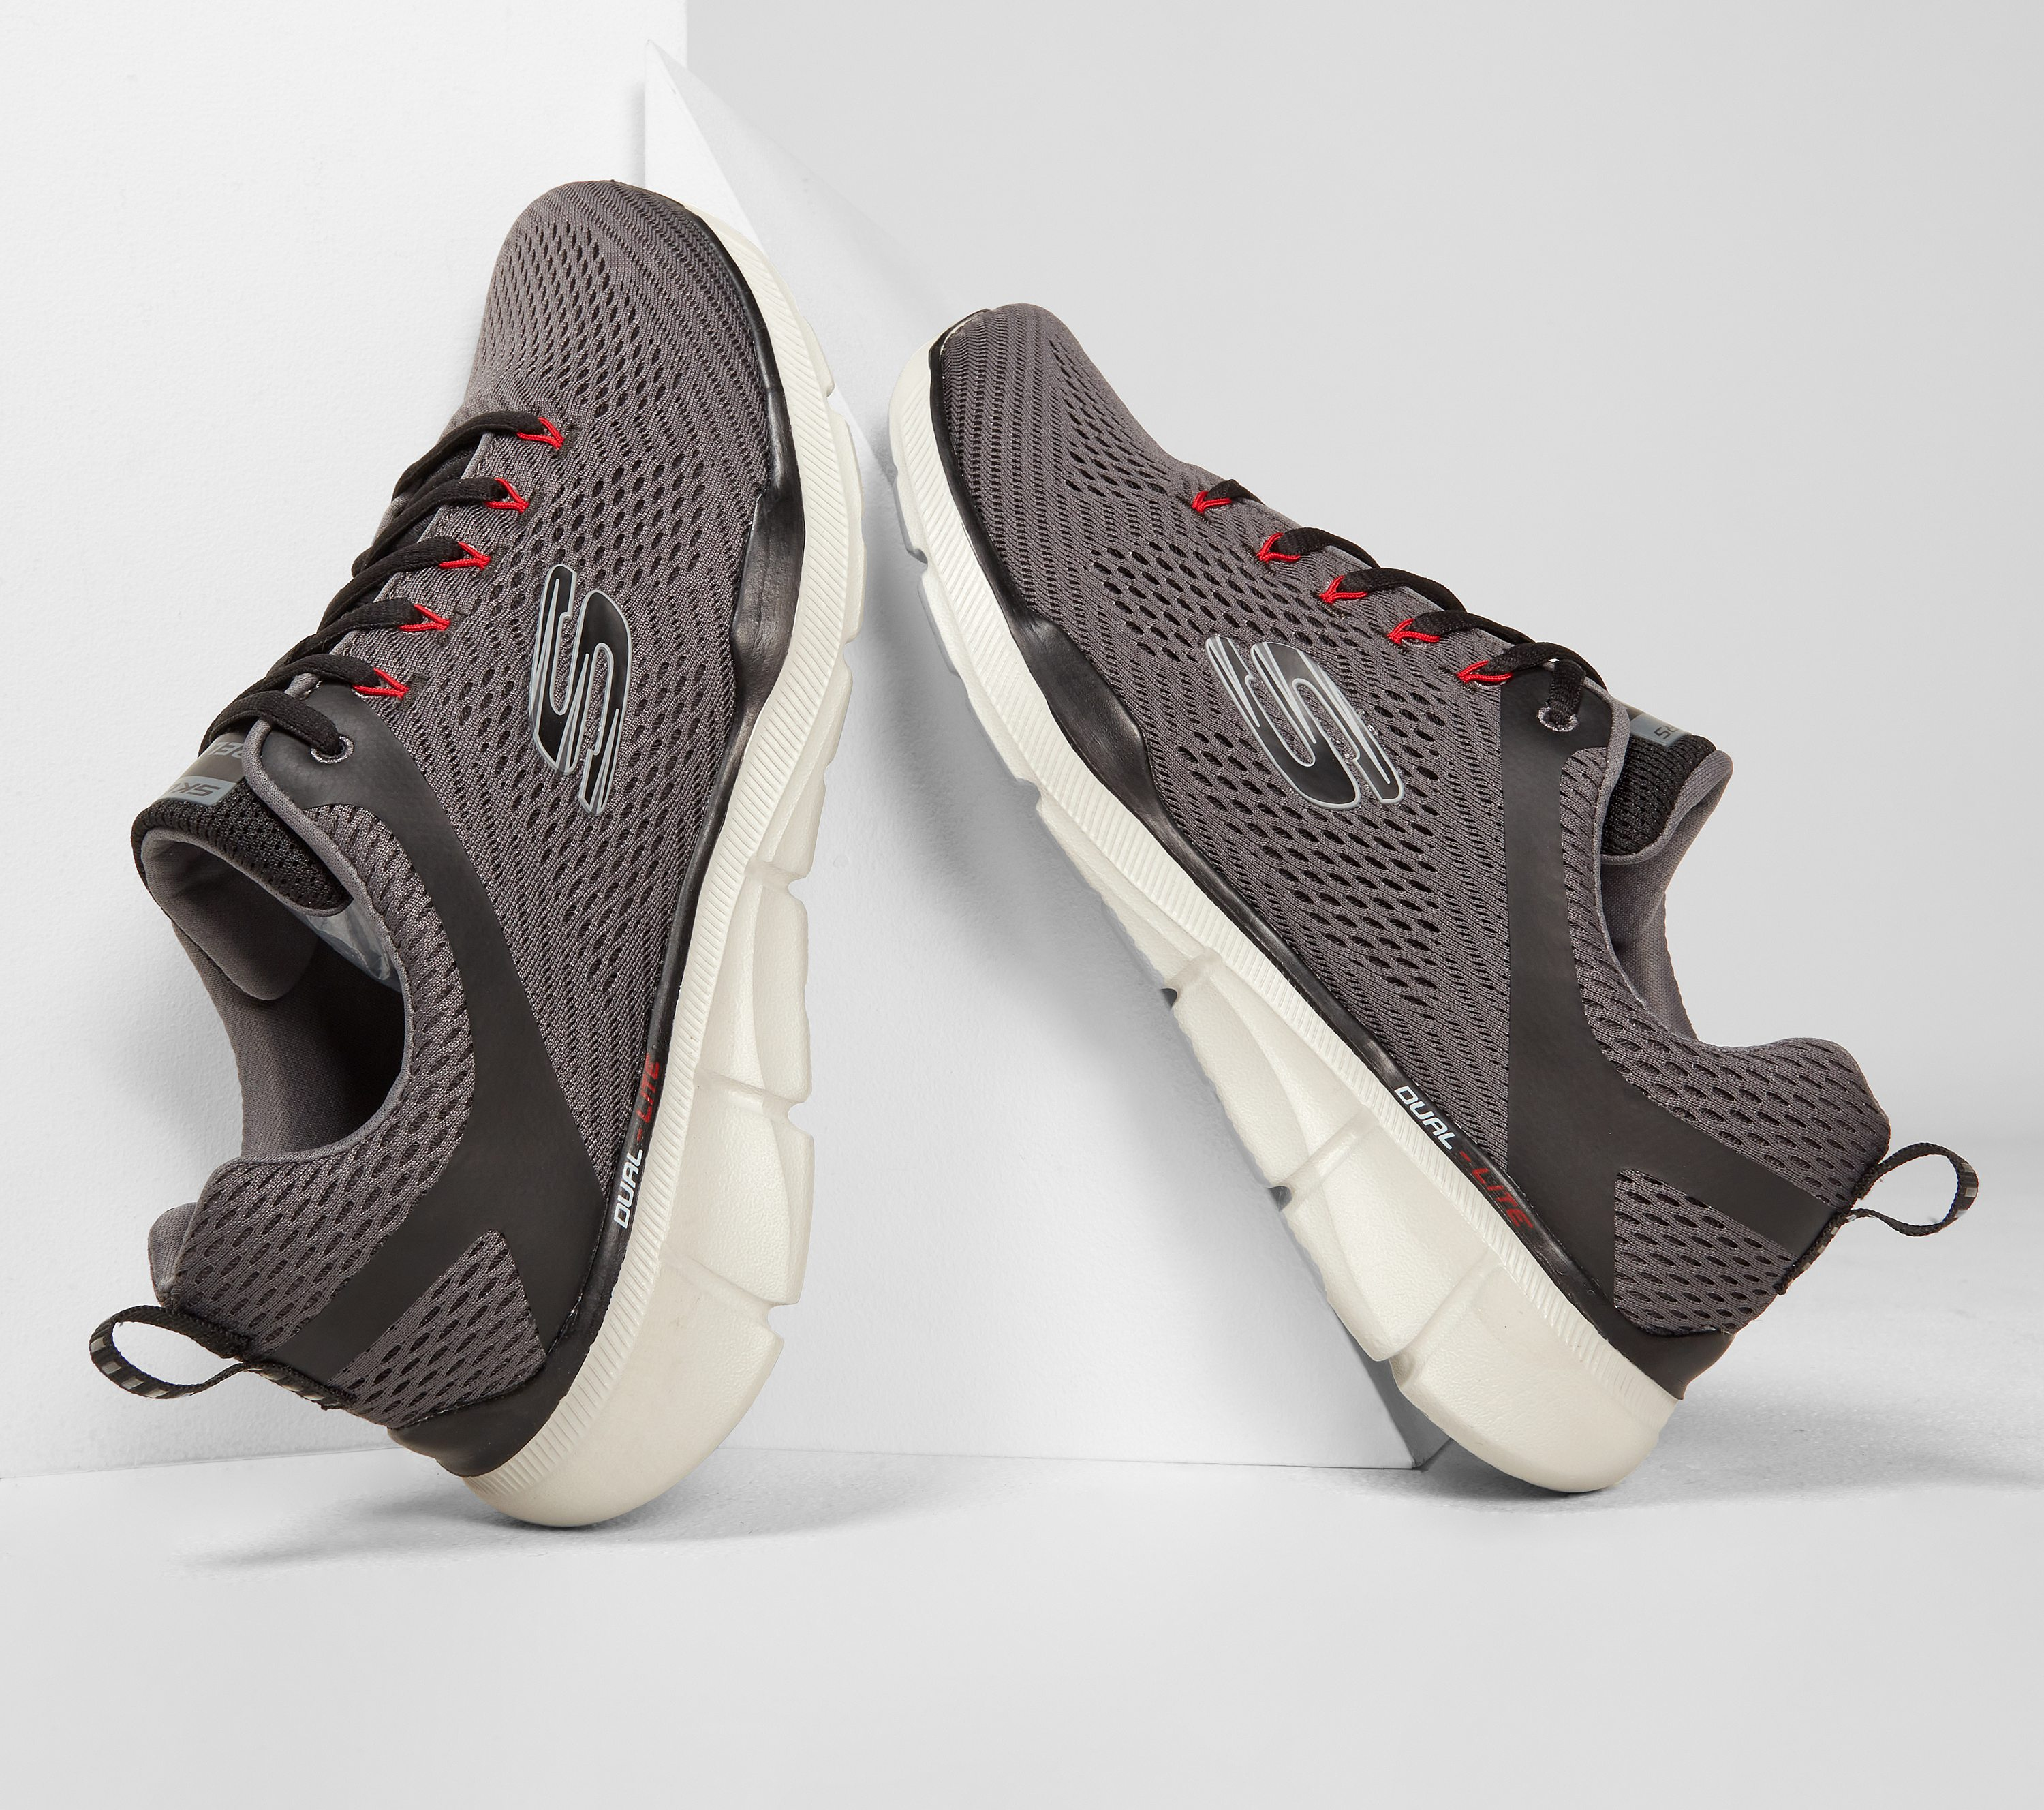 pago Plano realeza  Shop the Relaxed Fit: Equalizer 3.0 | SKECHERS